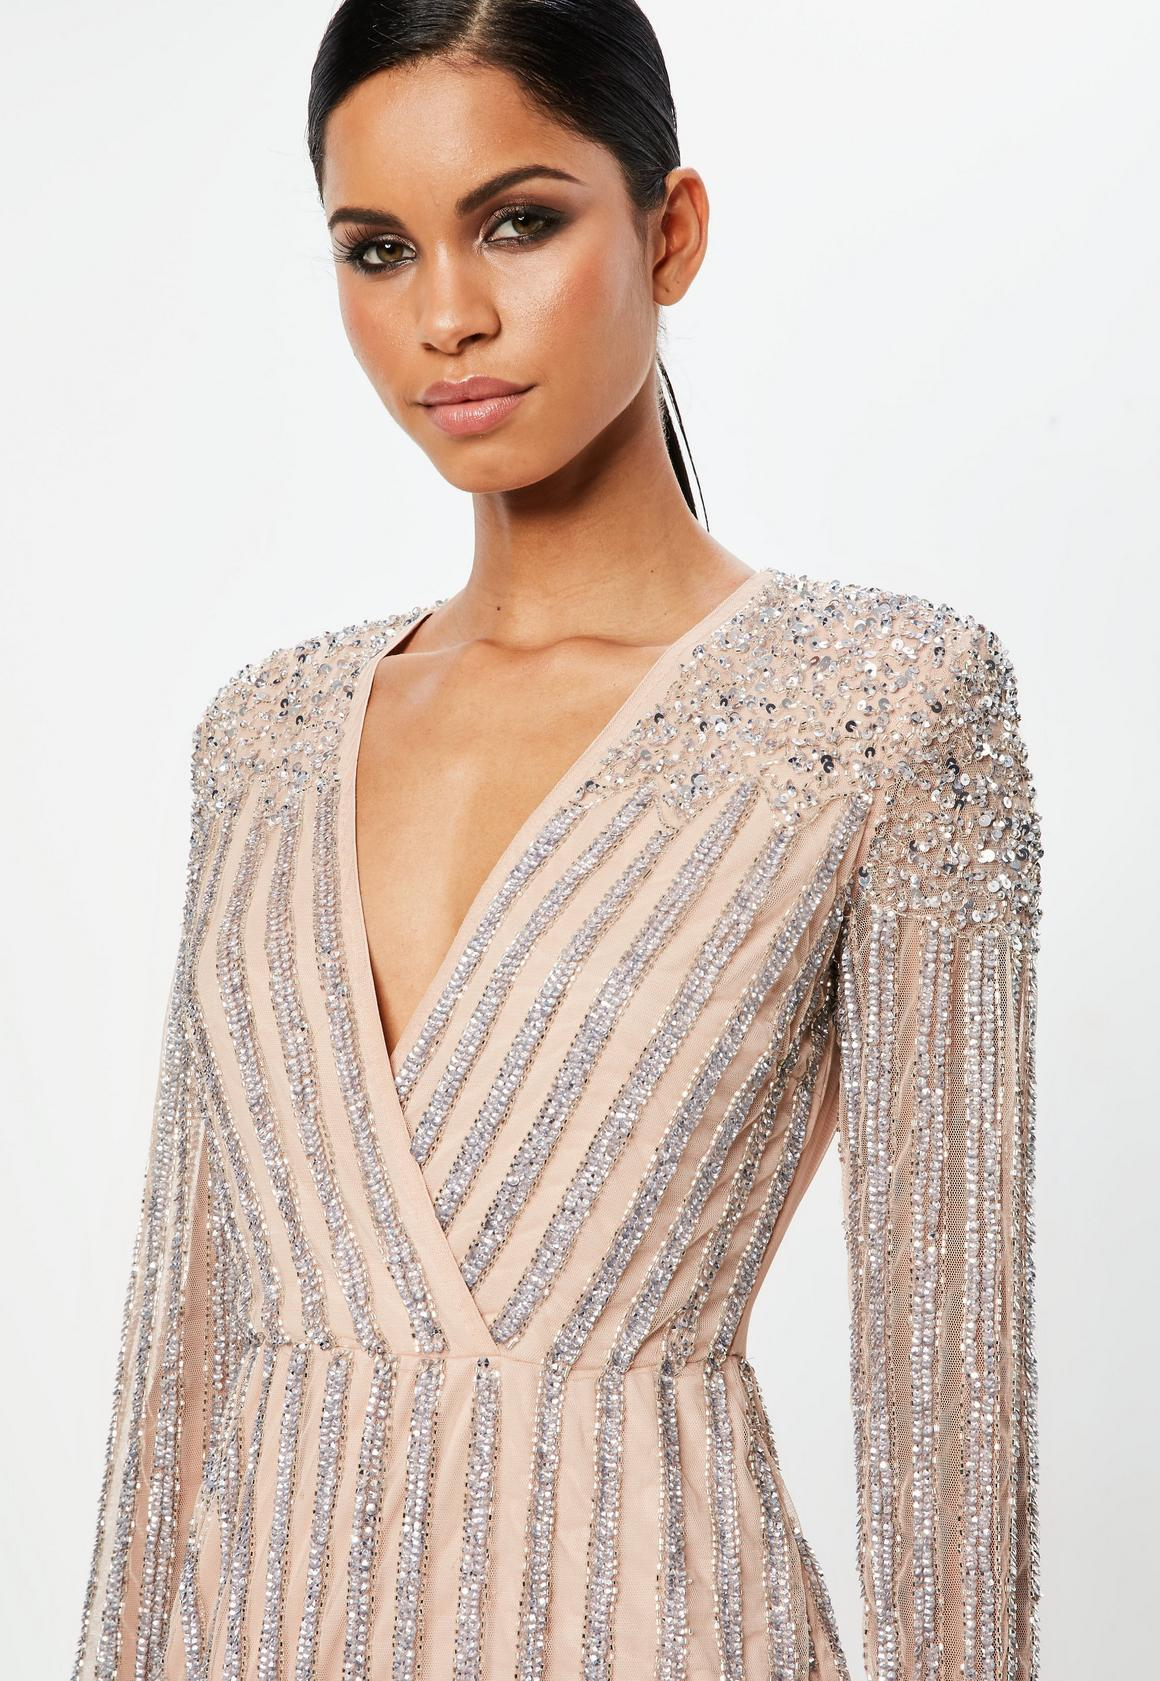 b01143607a35 Missguided - Carli Bybel x Missguided Nude Embellished Mini Dress, Beige - 2